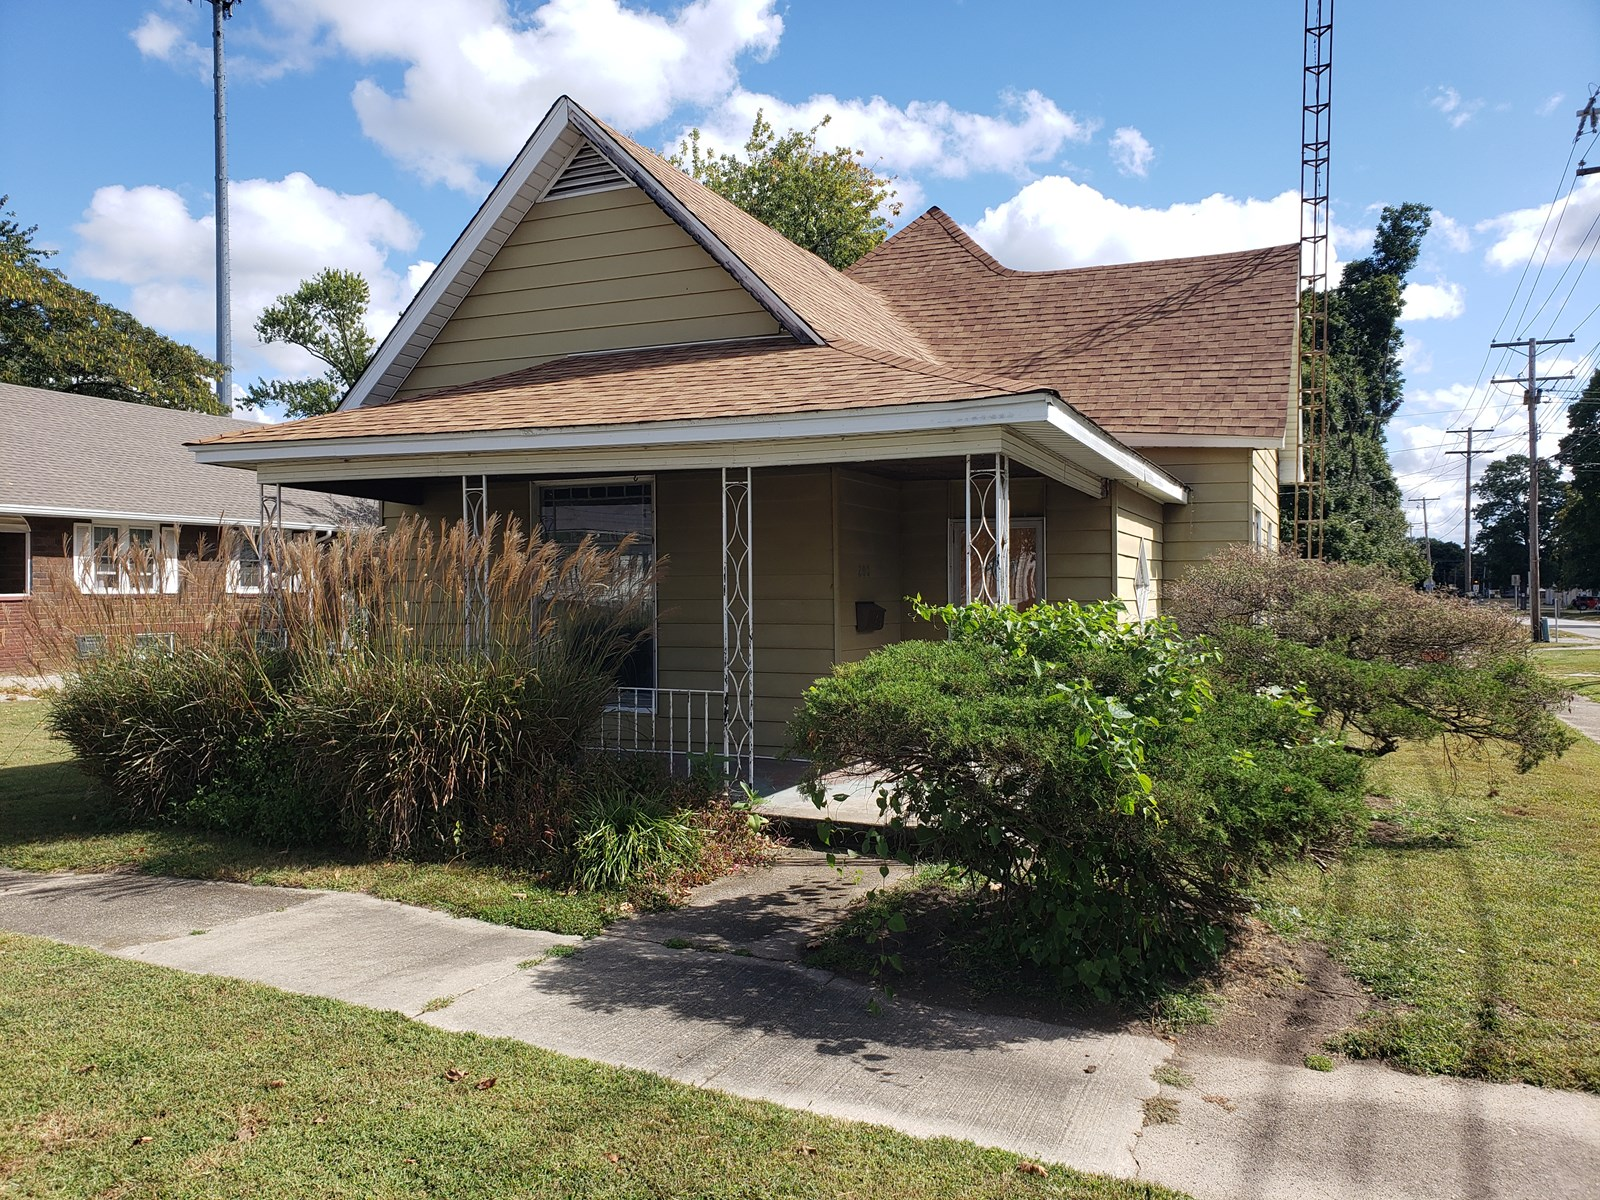 3 Bedroom, 1 Bath Home, Palestine, IL